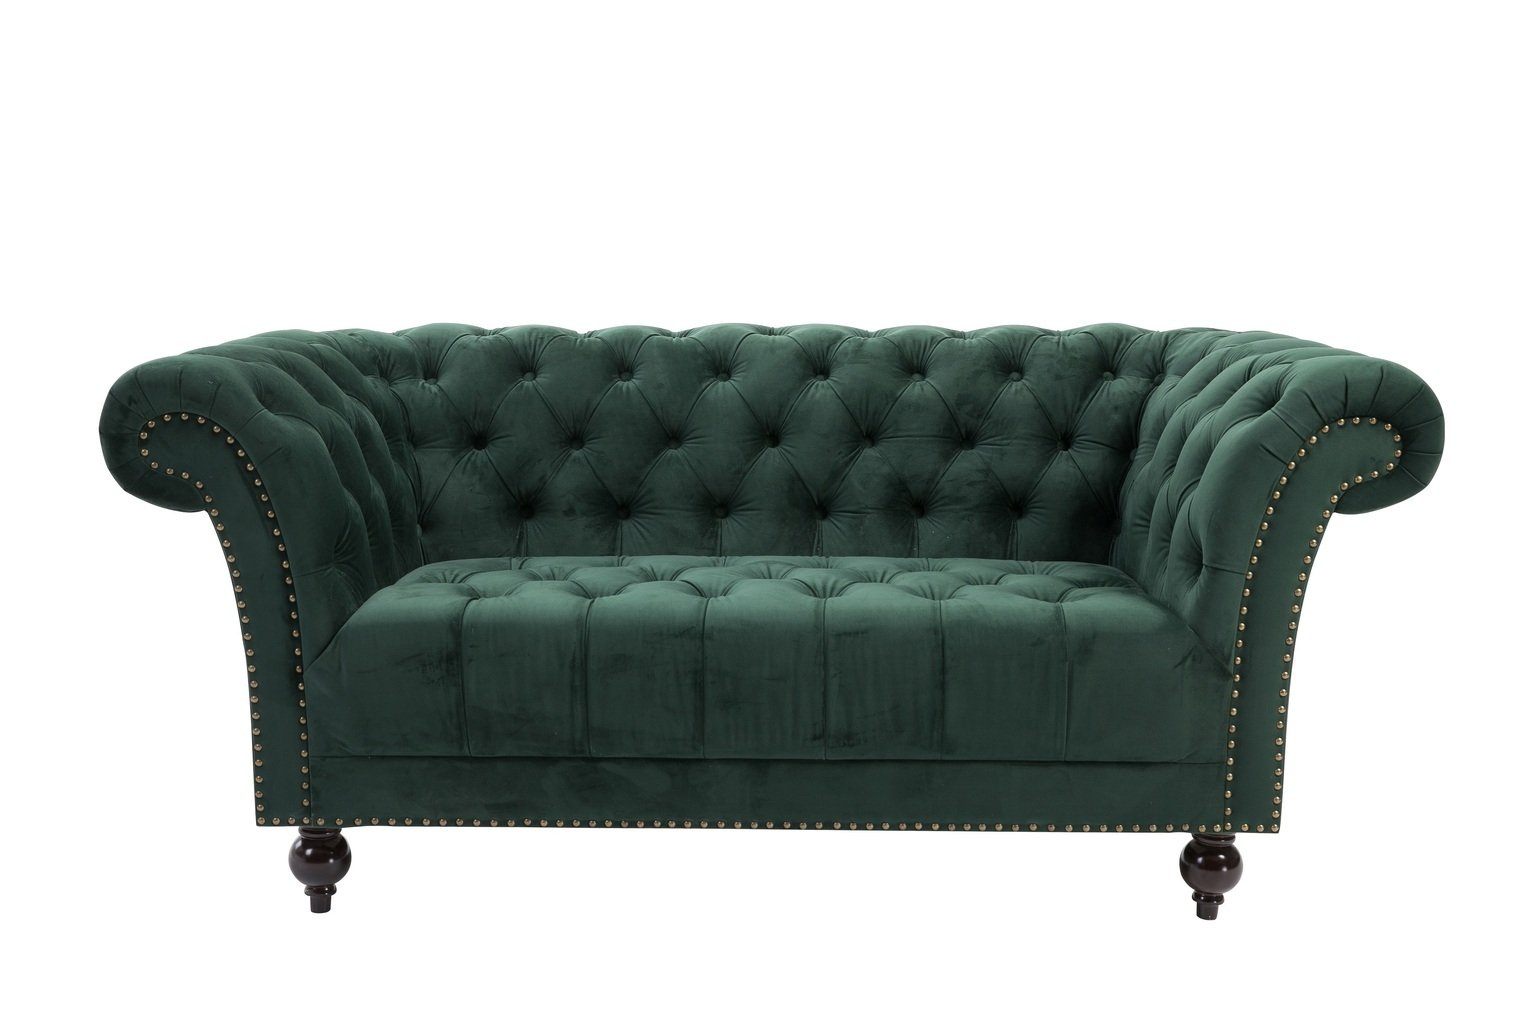 Birlea Chester 2 Seater Fabric Sofa - Green